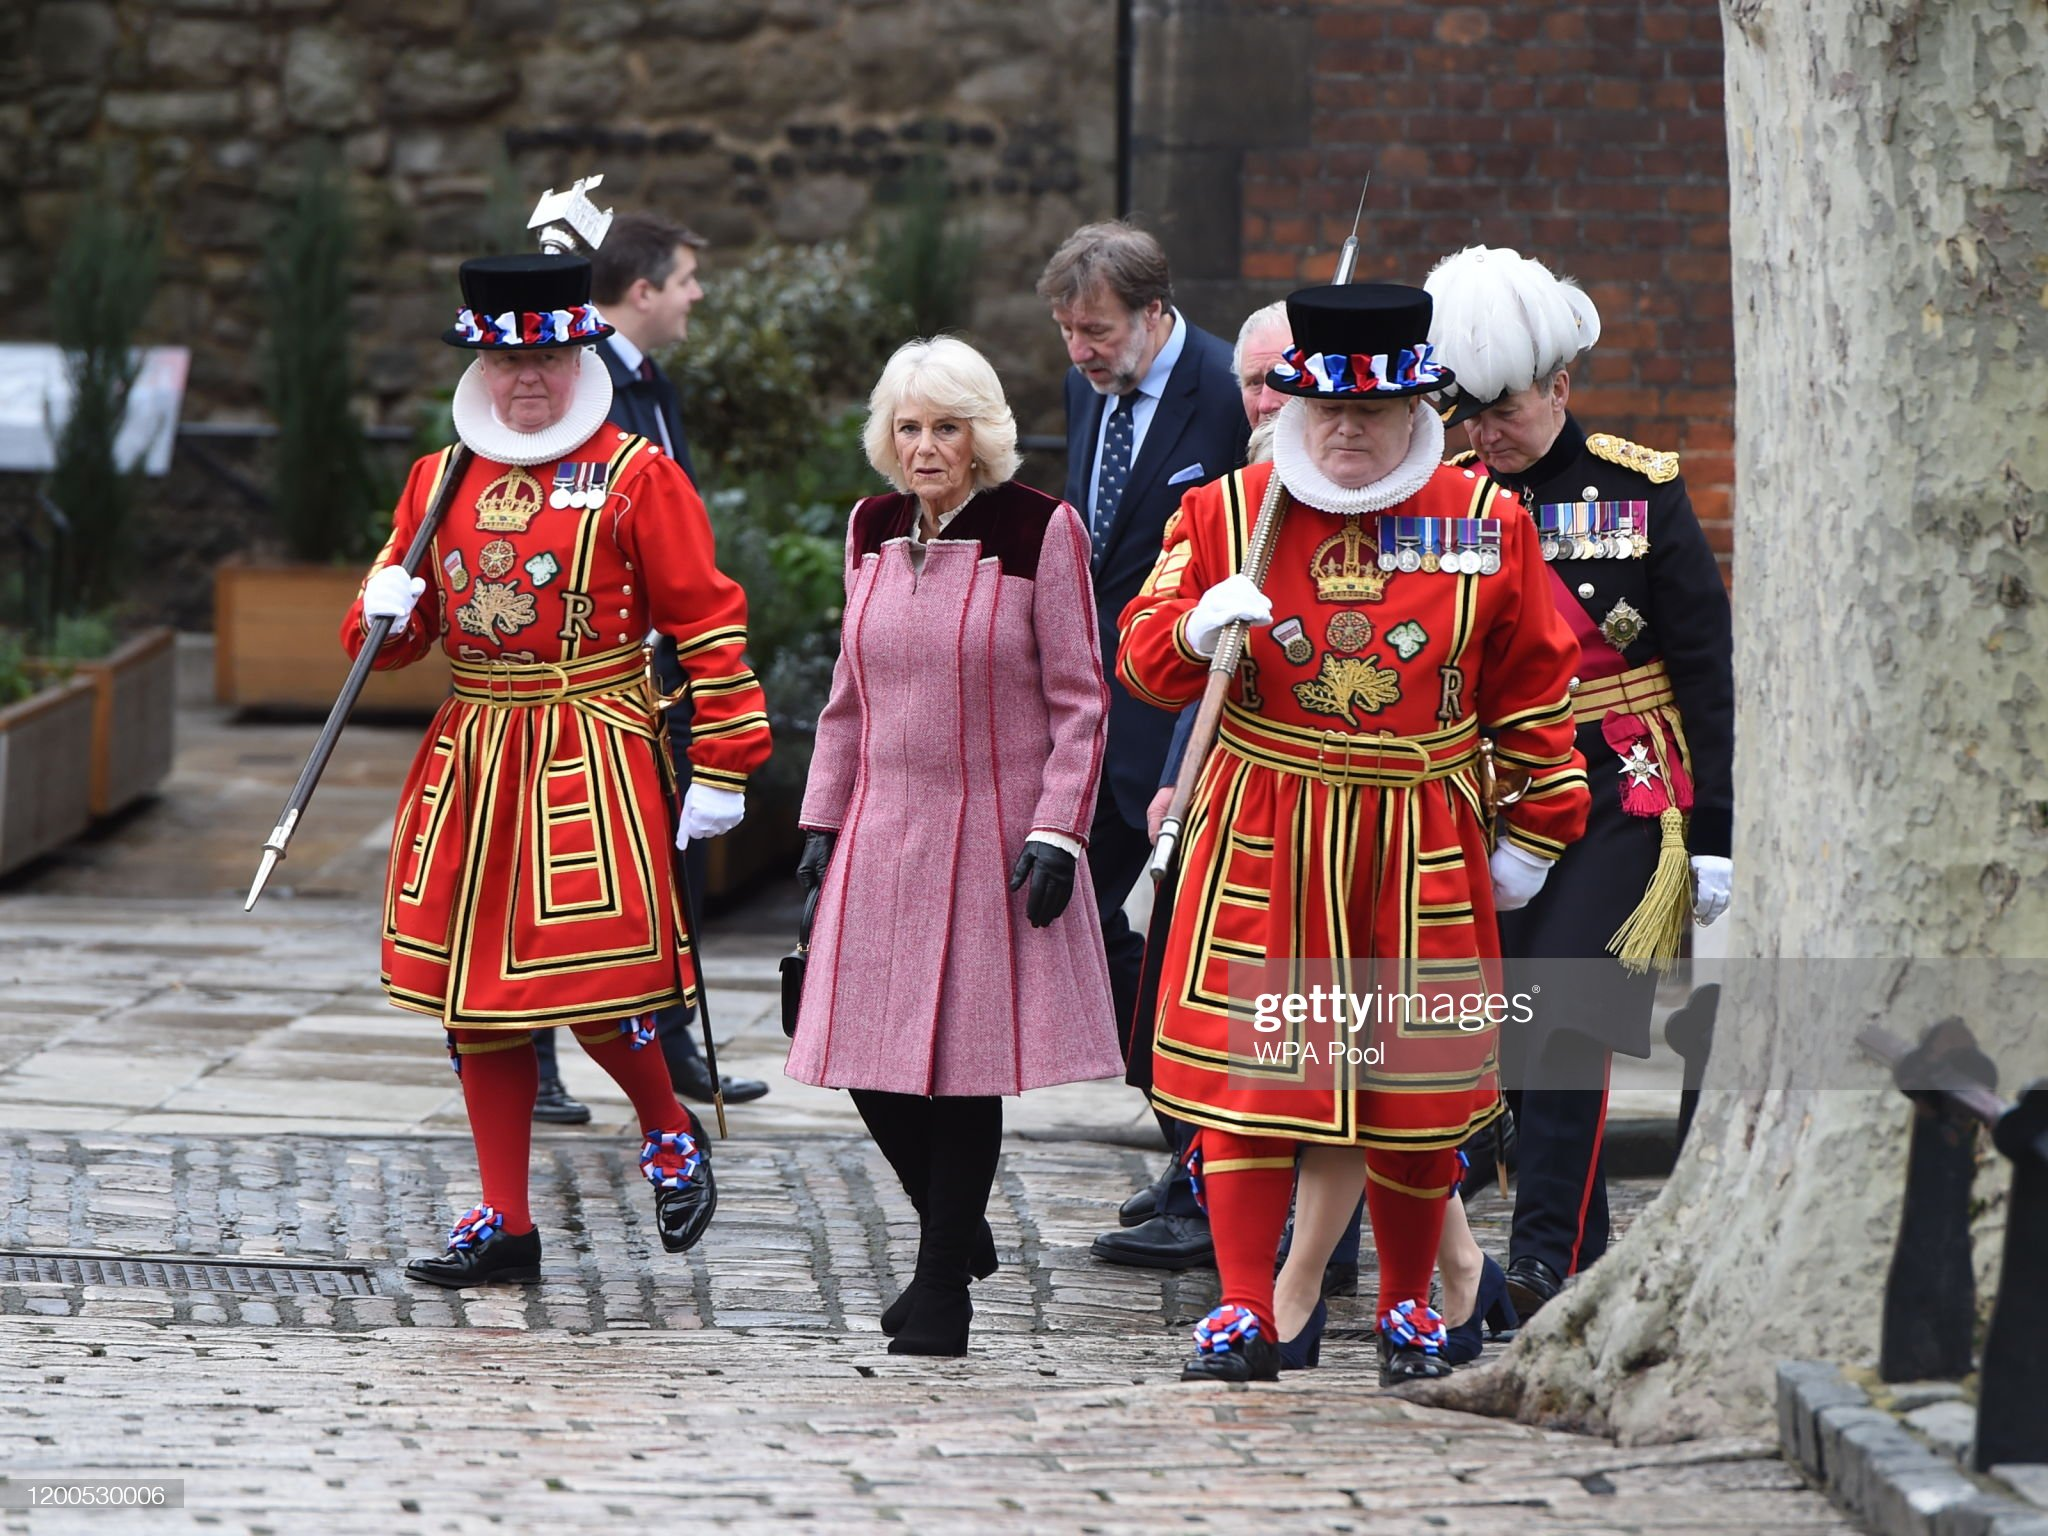 camilla-duchess-of-cornwall-visits-the-tower-of-london-to-mark-535-picture-id1200530006